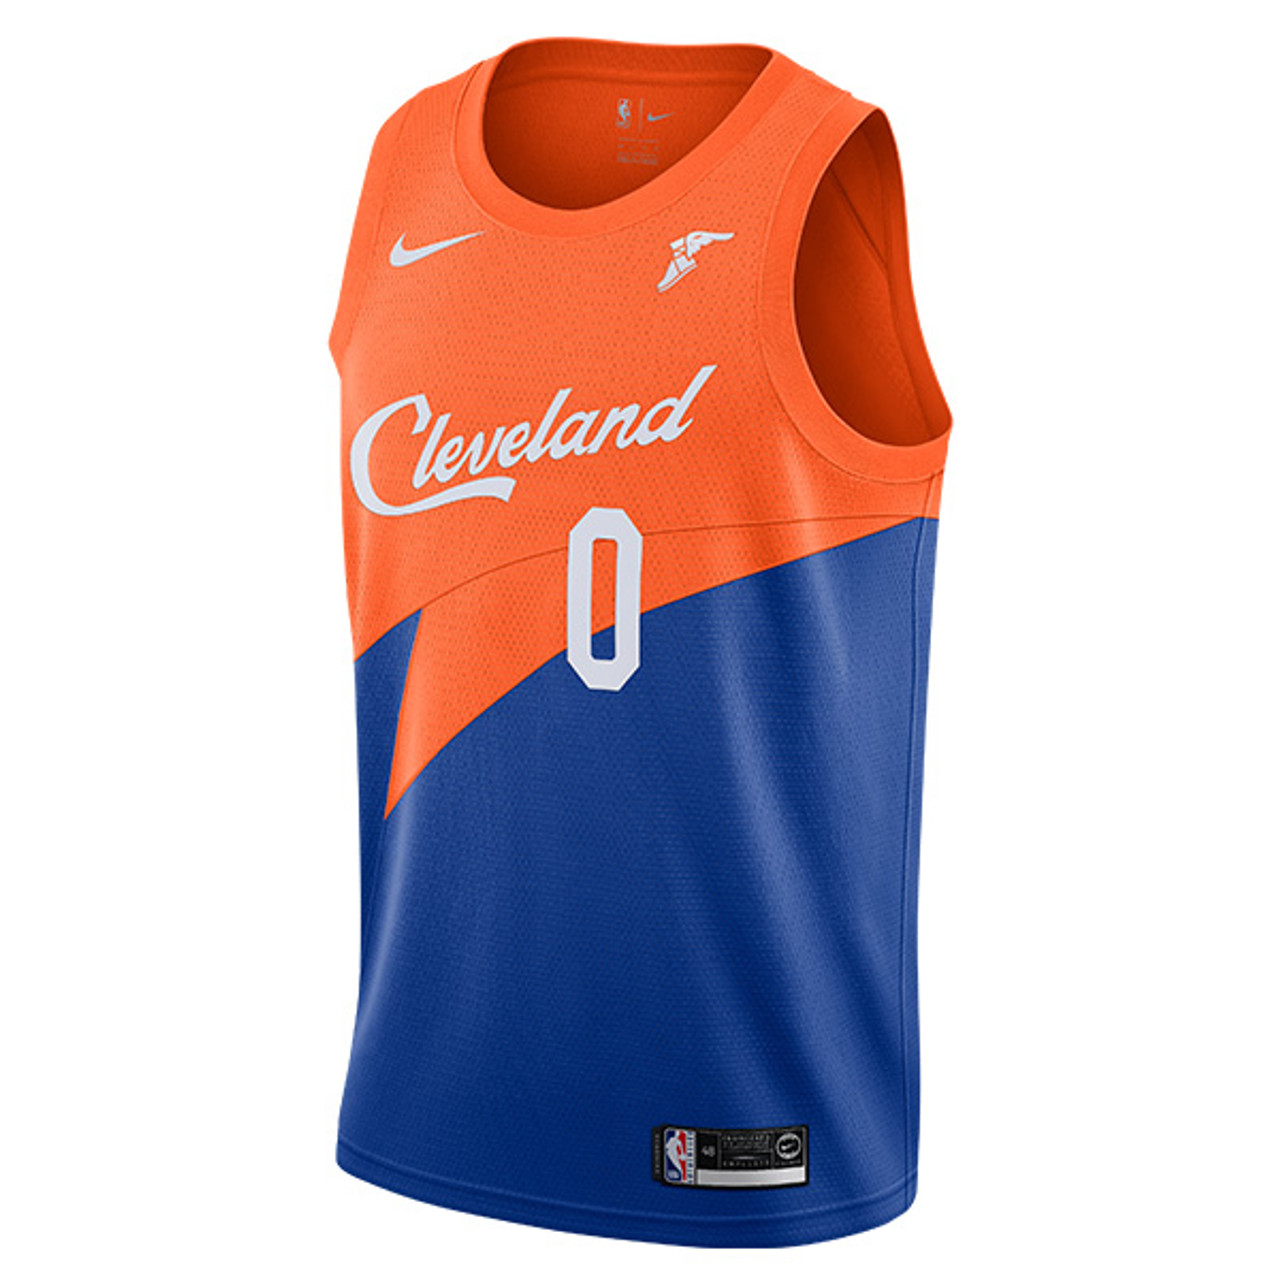 0511411f492 ... usa royal blue orange kevin love cleveland city edition swingman jersey  by nike 00d03 e237b